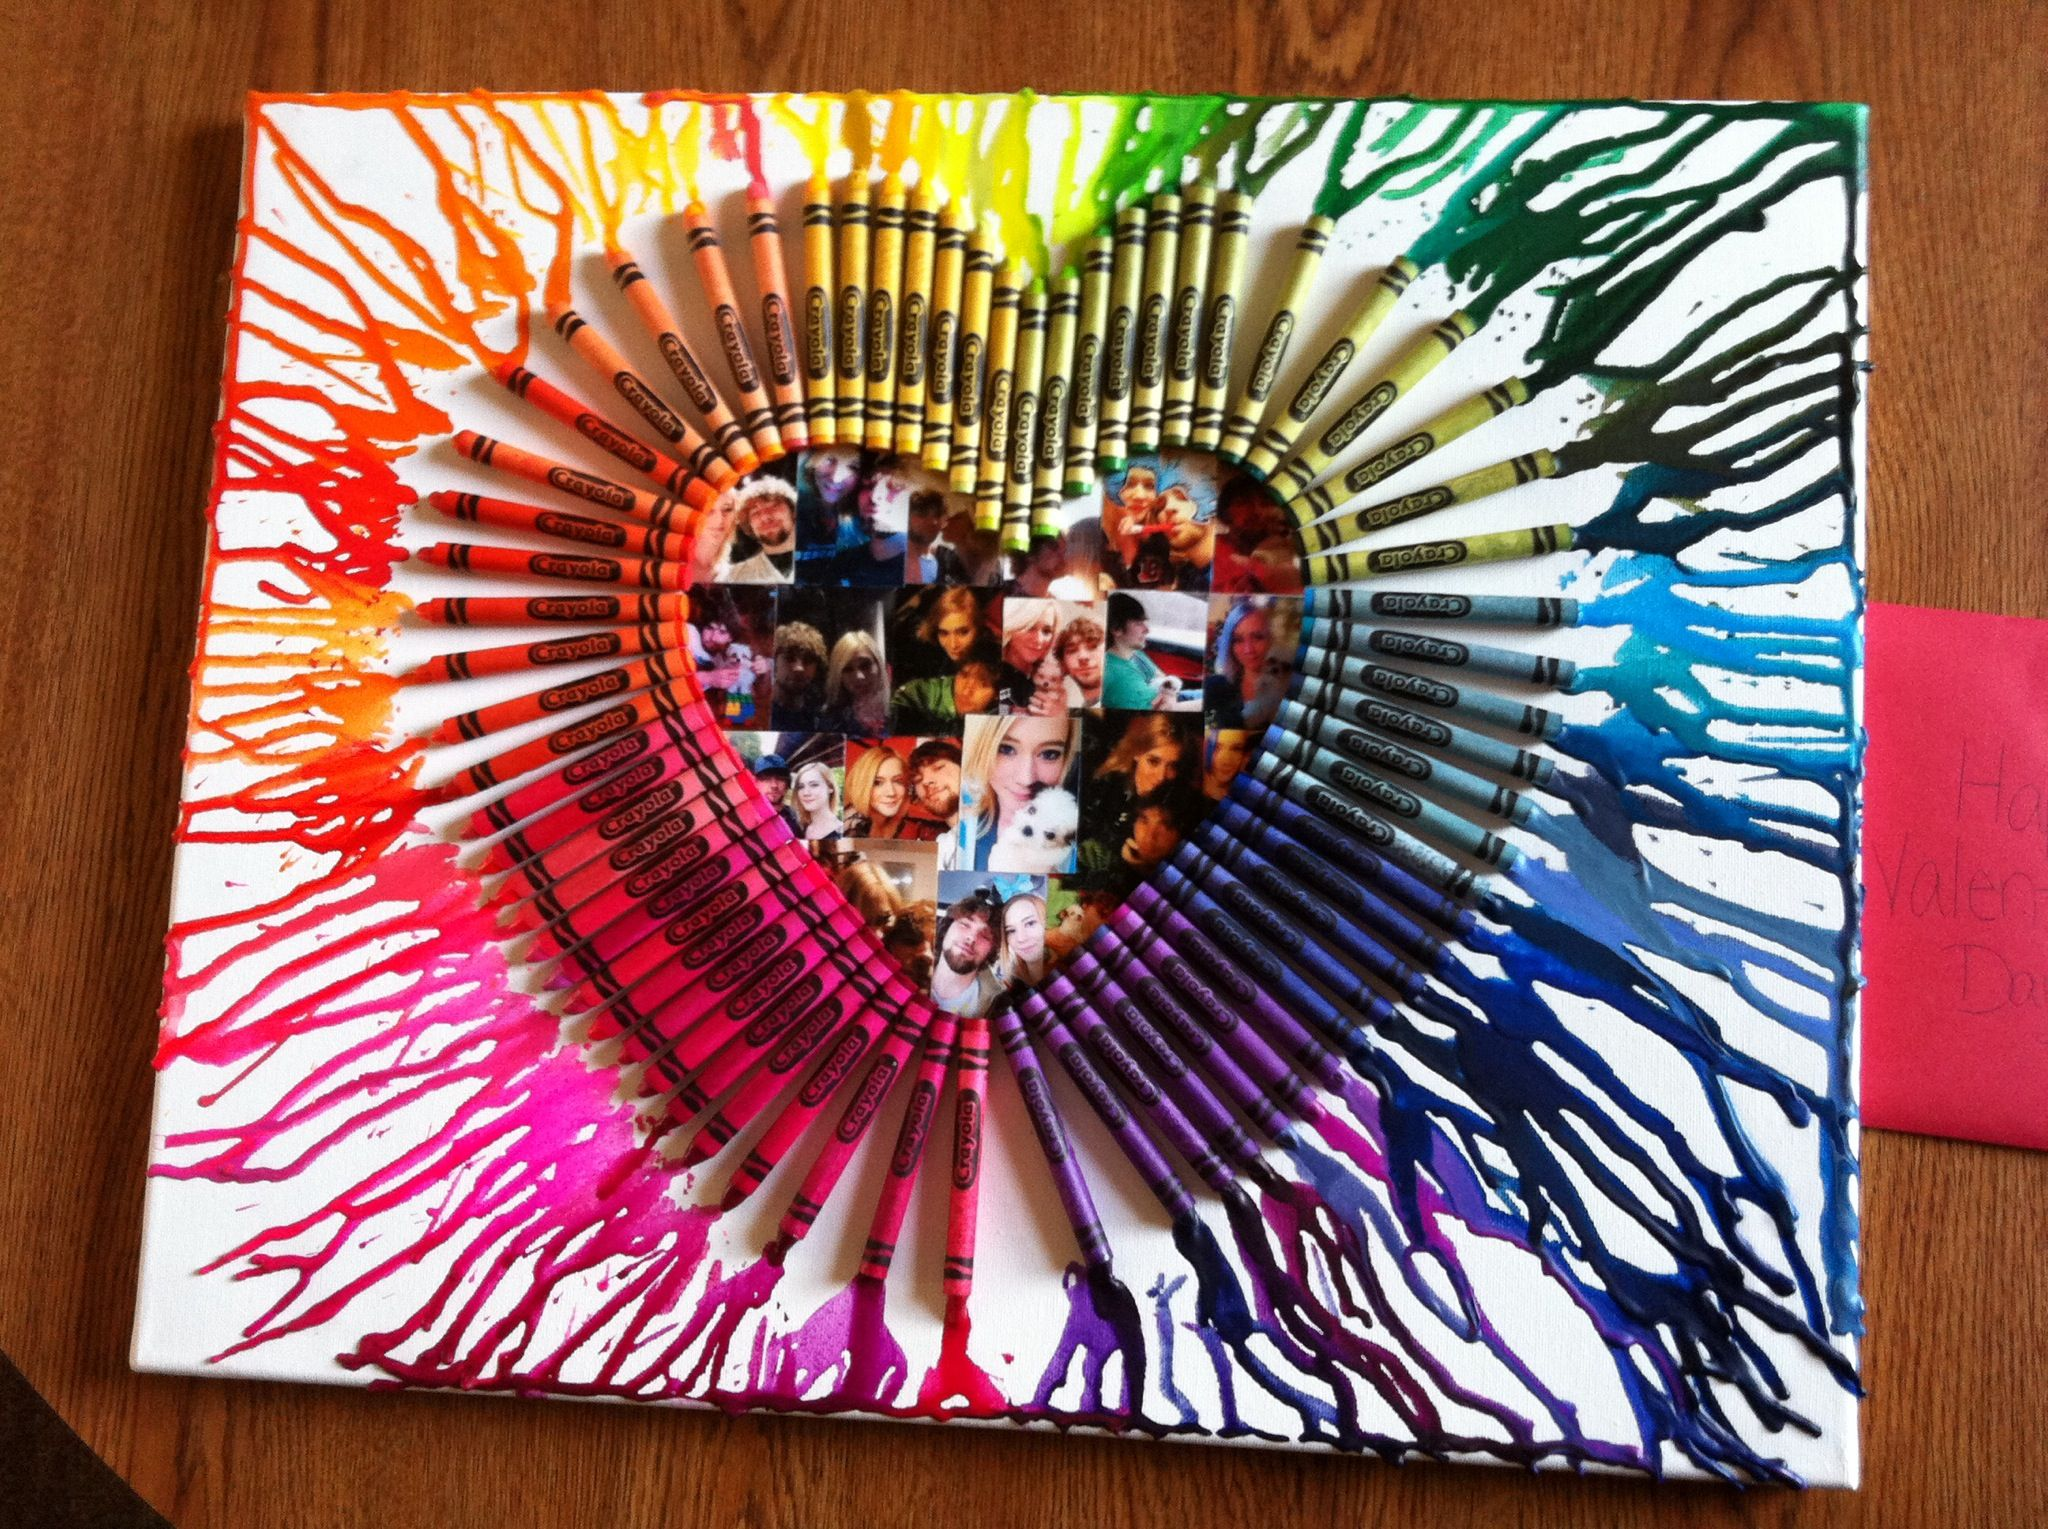 Melted Crayon Heart. I made for Valentines Day for my boyfriend, All you do is hot glue crayons into a shape on a canvas, then melt them with a blow dryer. Tip the canvas to make it melt a certain way or to splatter a certain way, Then if you want you can glue pictures inside too :) #crayonheart